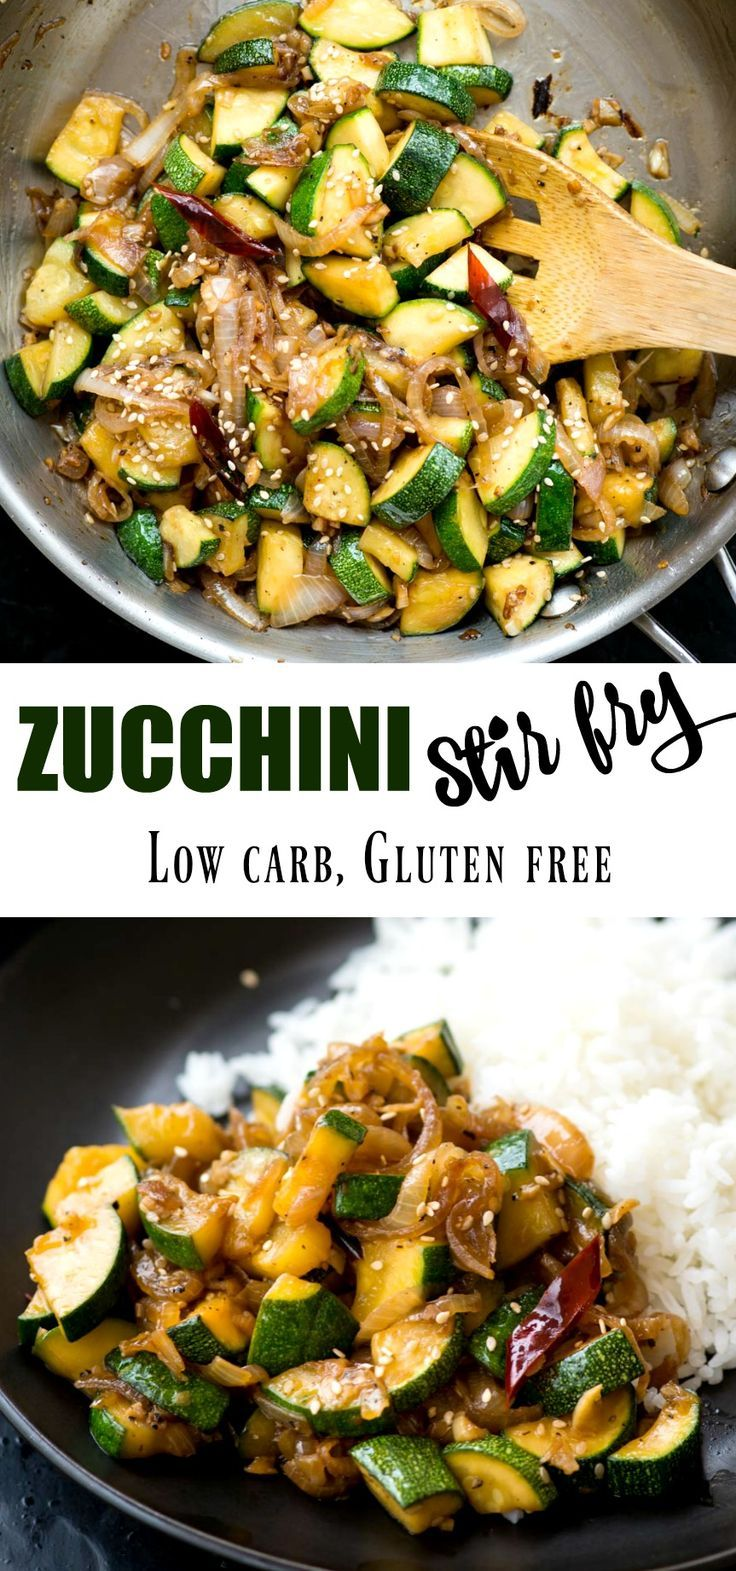 Zucchini Stir Fry - The flavours of kitchen